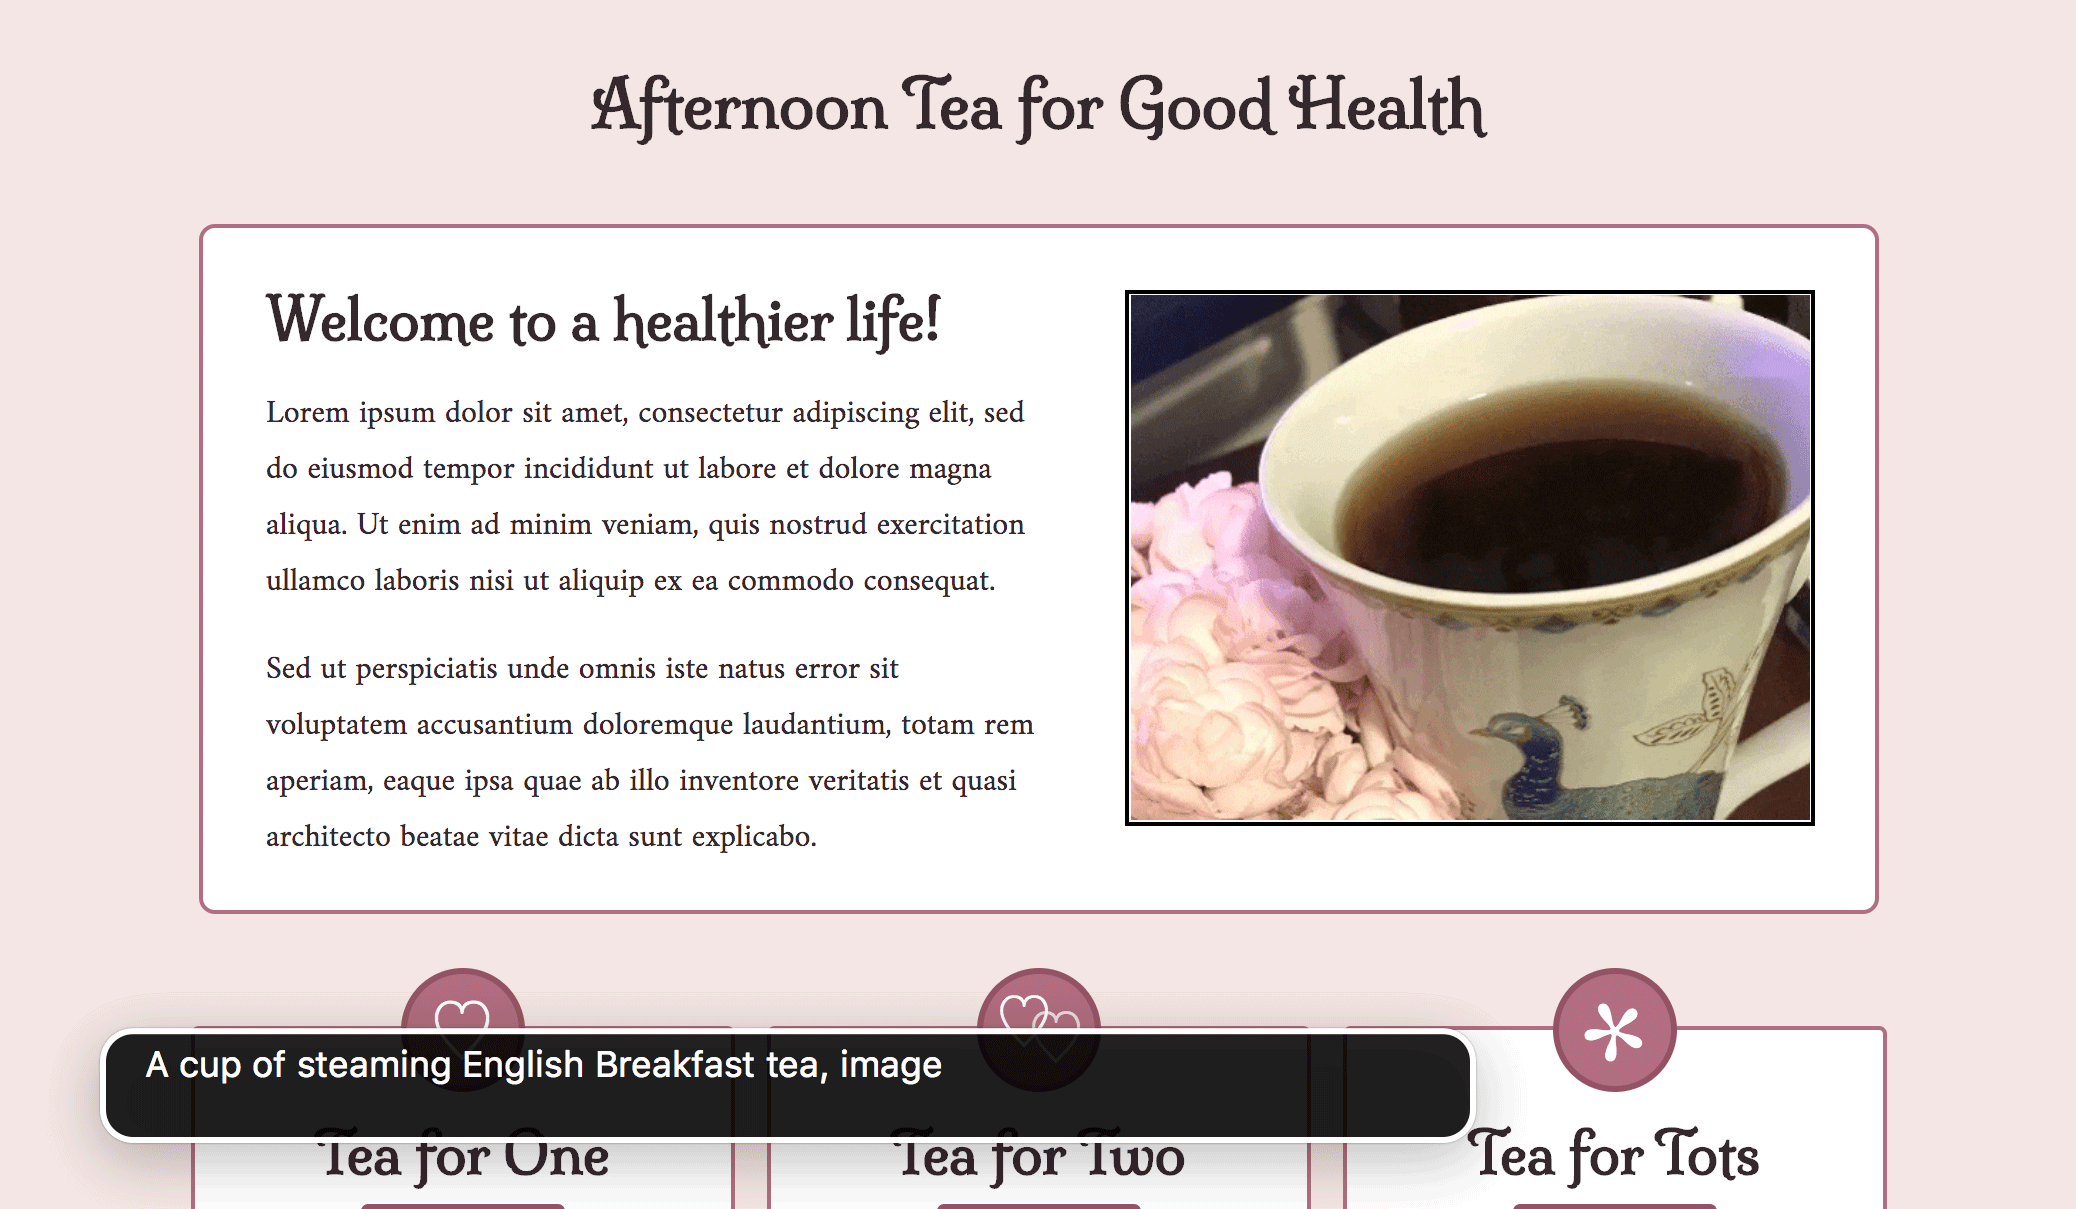 Sample web page showing the alt text of an image displayed on the screen.